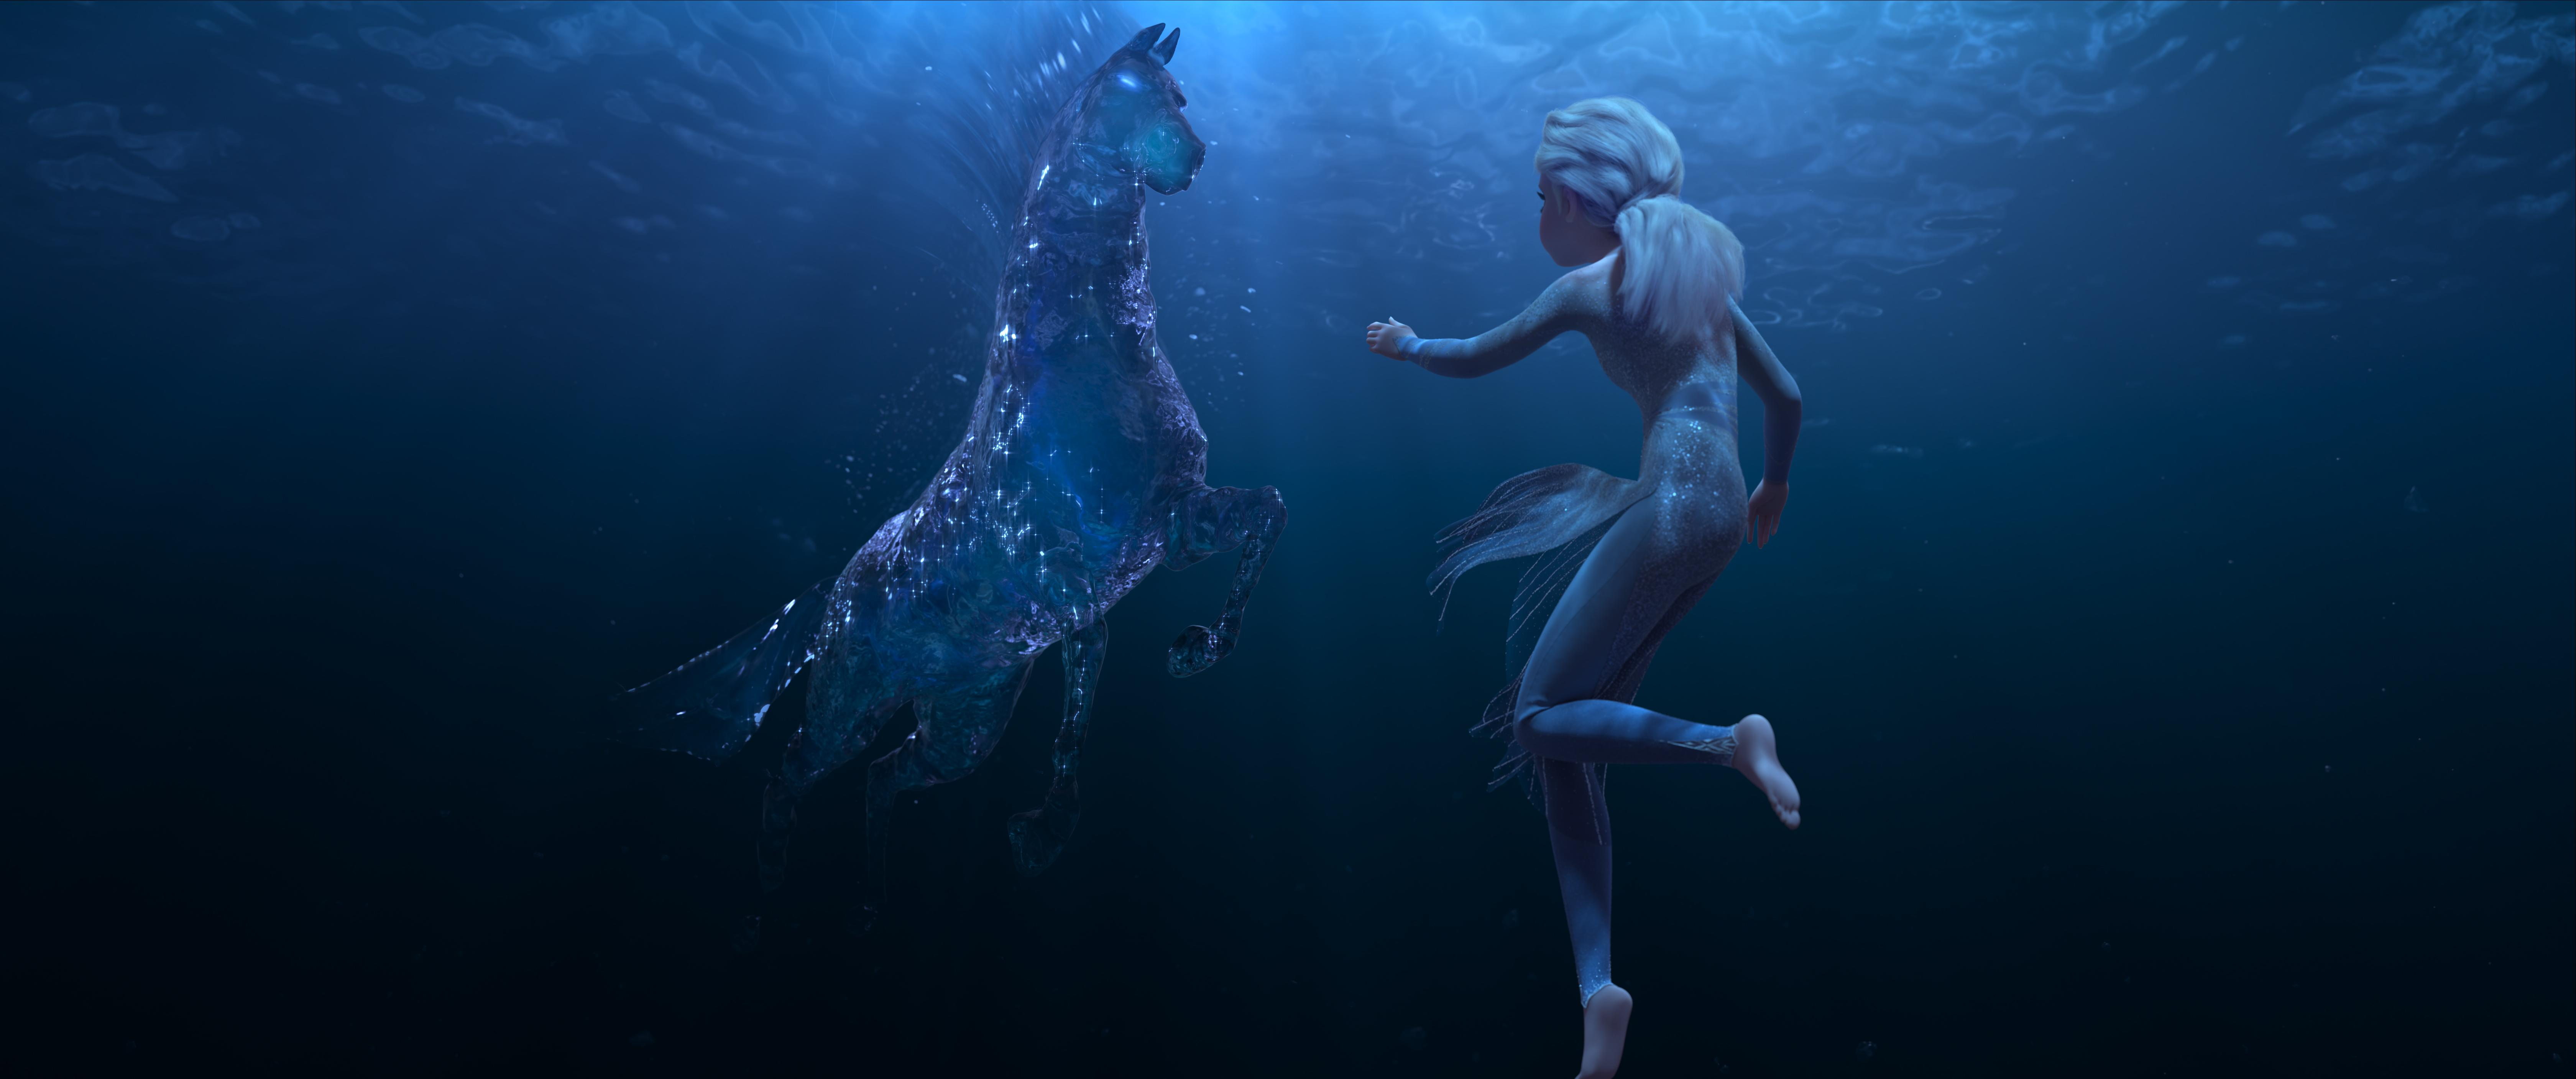 Elsa meets a mythical water spirit in the all-new 'Frozen II' trailer (Photo: Walt Disney Animation Studios)